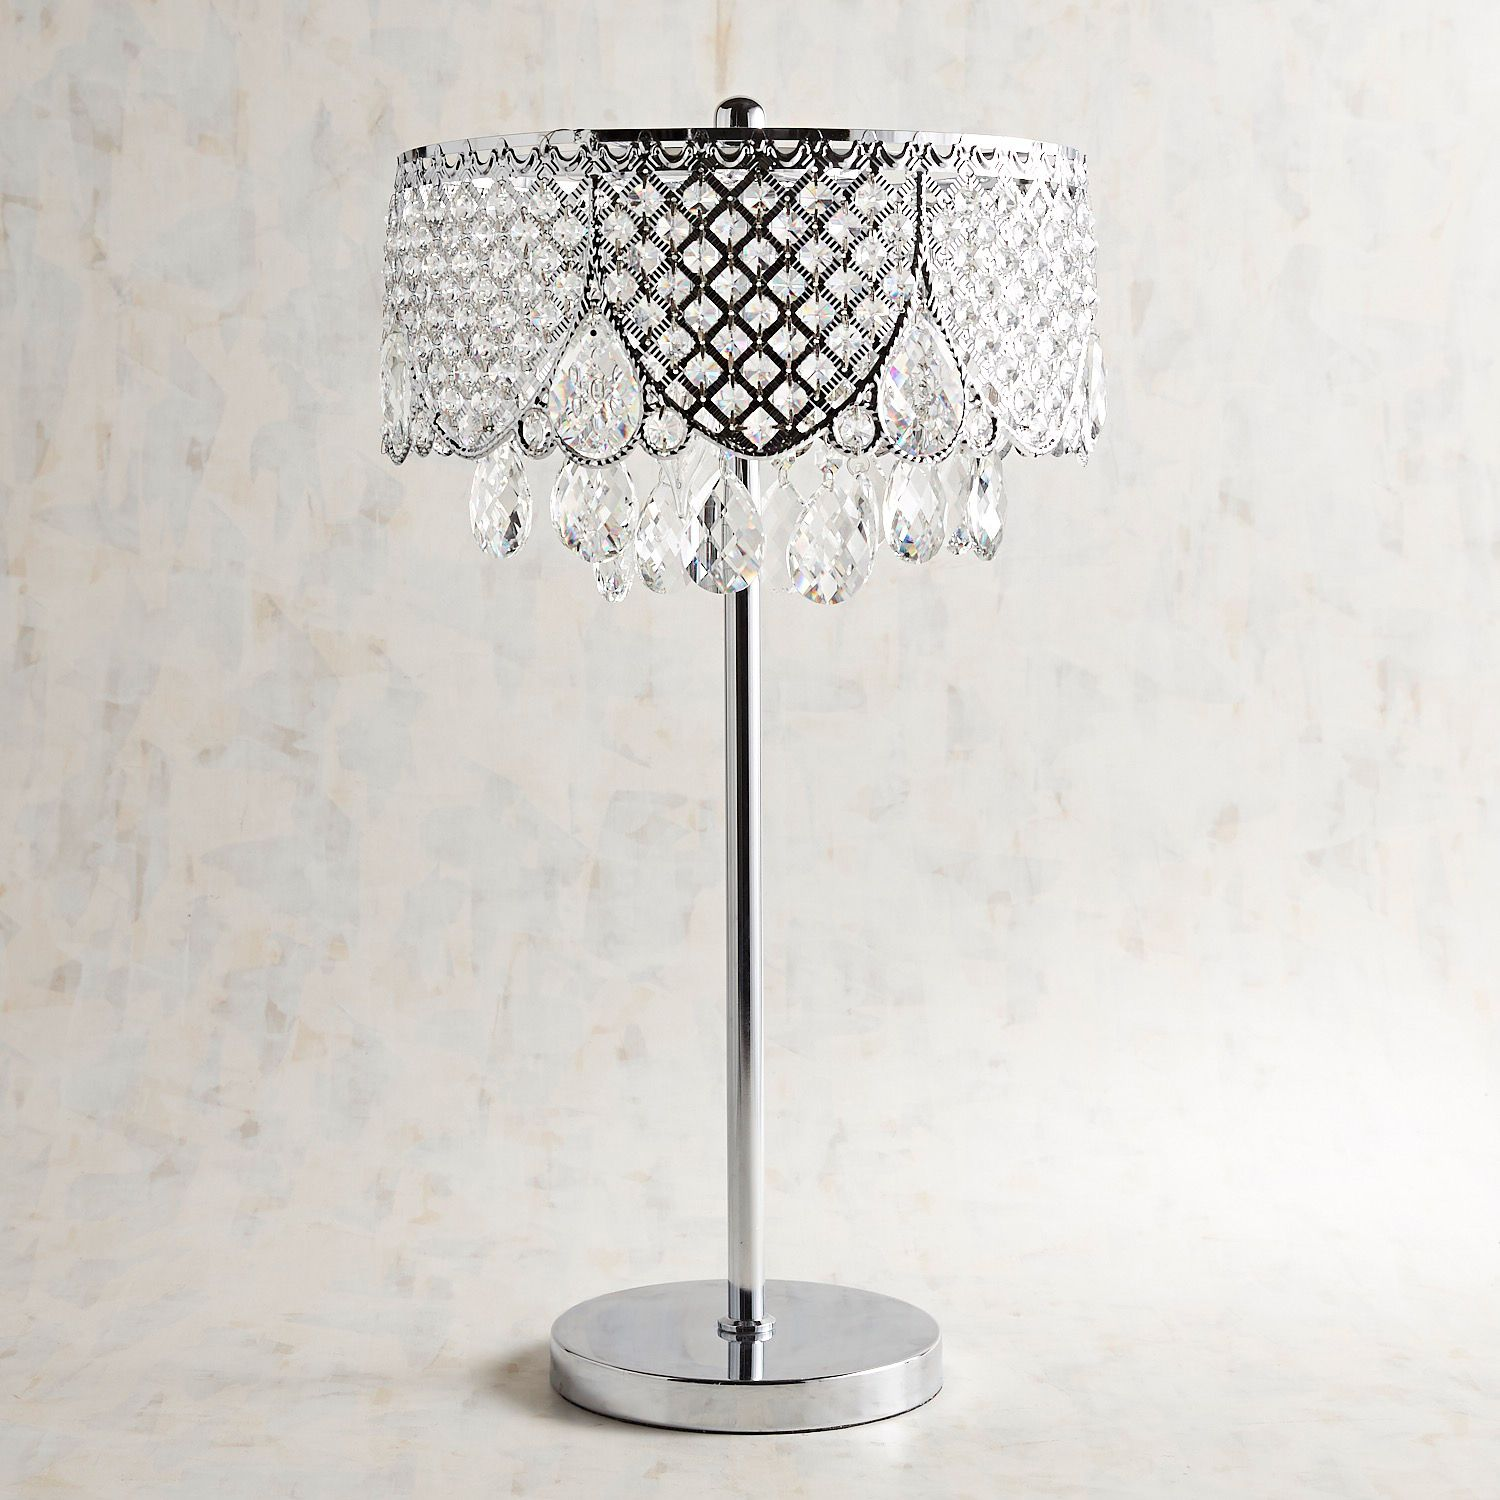 crystal table lamp pier imports one accent lamps insulated ice bucket modern dining room sets purple linens garden umbrella outdoor wicker furniture silver metal console cool